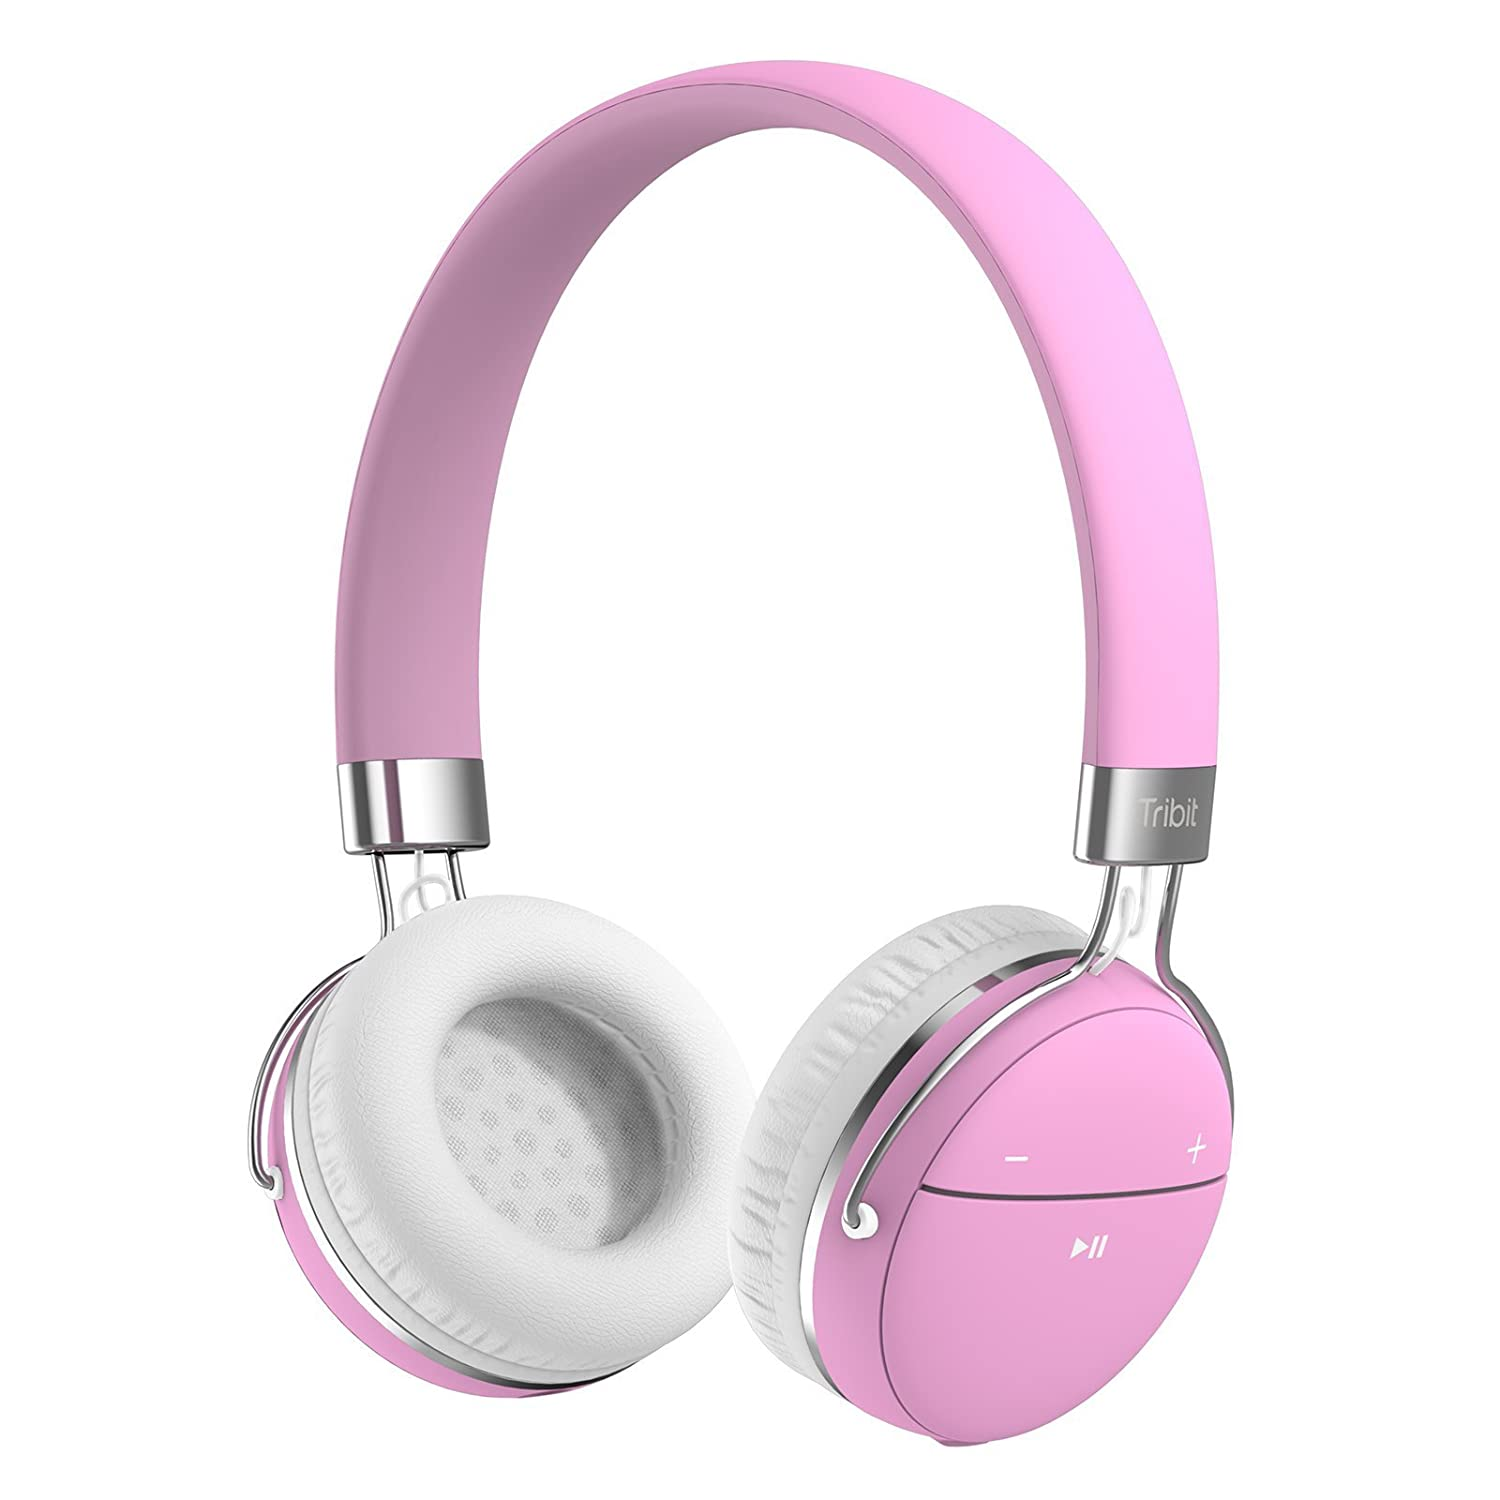 1b20514dce5 Tribit XFree Move Wireless Headphones for Girls, Bluetooth Headphones Hi-Fi  Stereo Deep Bass, Bullet-in Mic and Wired Mode, On Ear, Support 3.5 mm AUX  ...